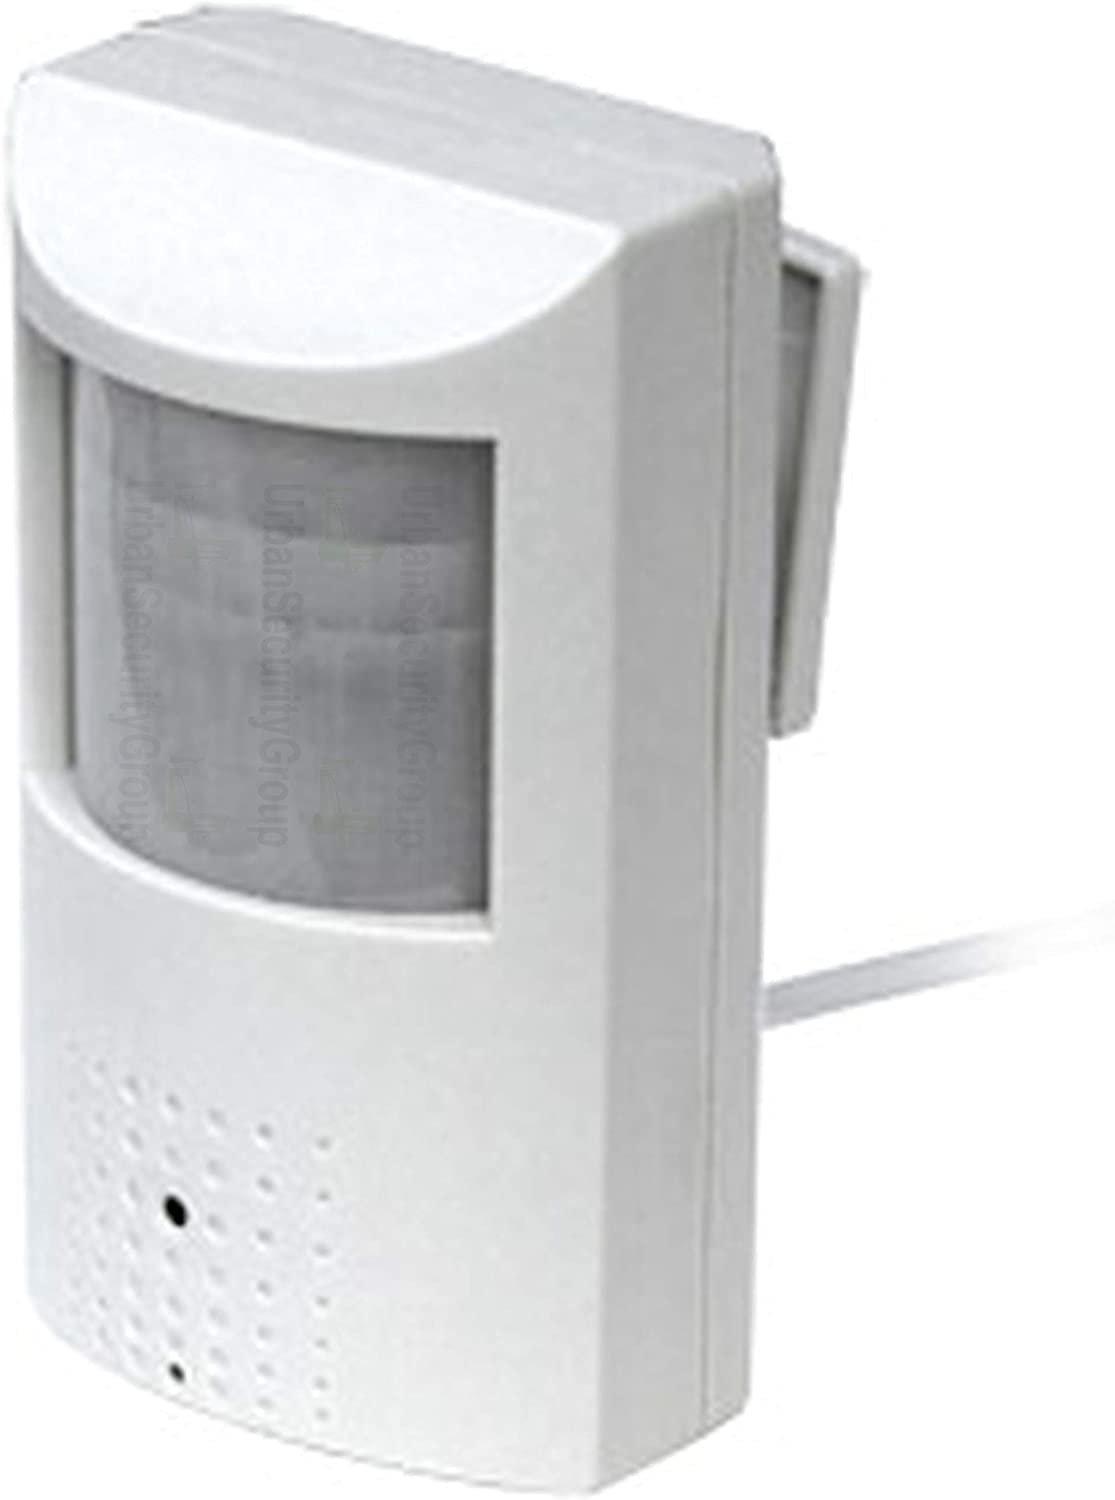 Urban Security Group 5MP HD IP PoE Hidden Spy Covert Security Camera : 2.8mm Wide Angle Lens, 48x 940nm Invisible IR LEDs, IR Cut Filter, PIR Motion Detector Sensor Form Factor